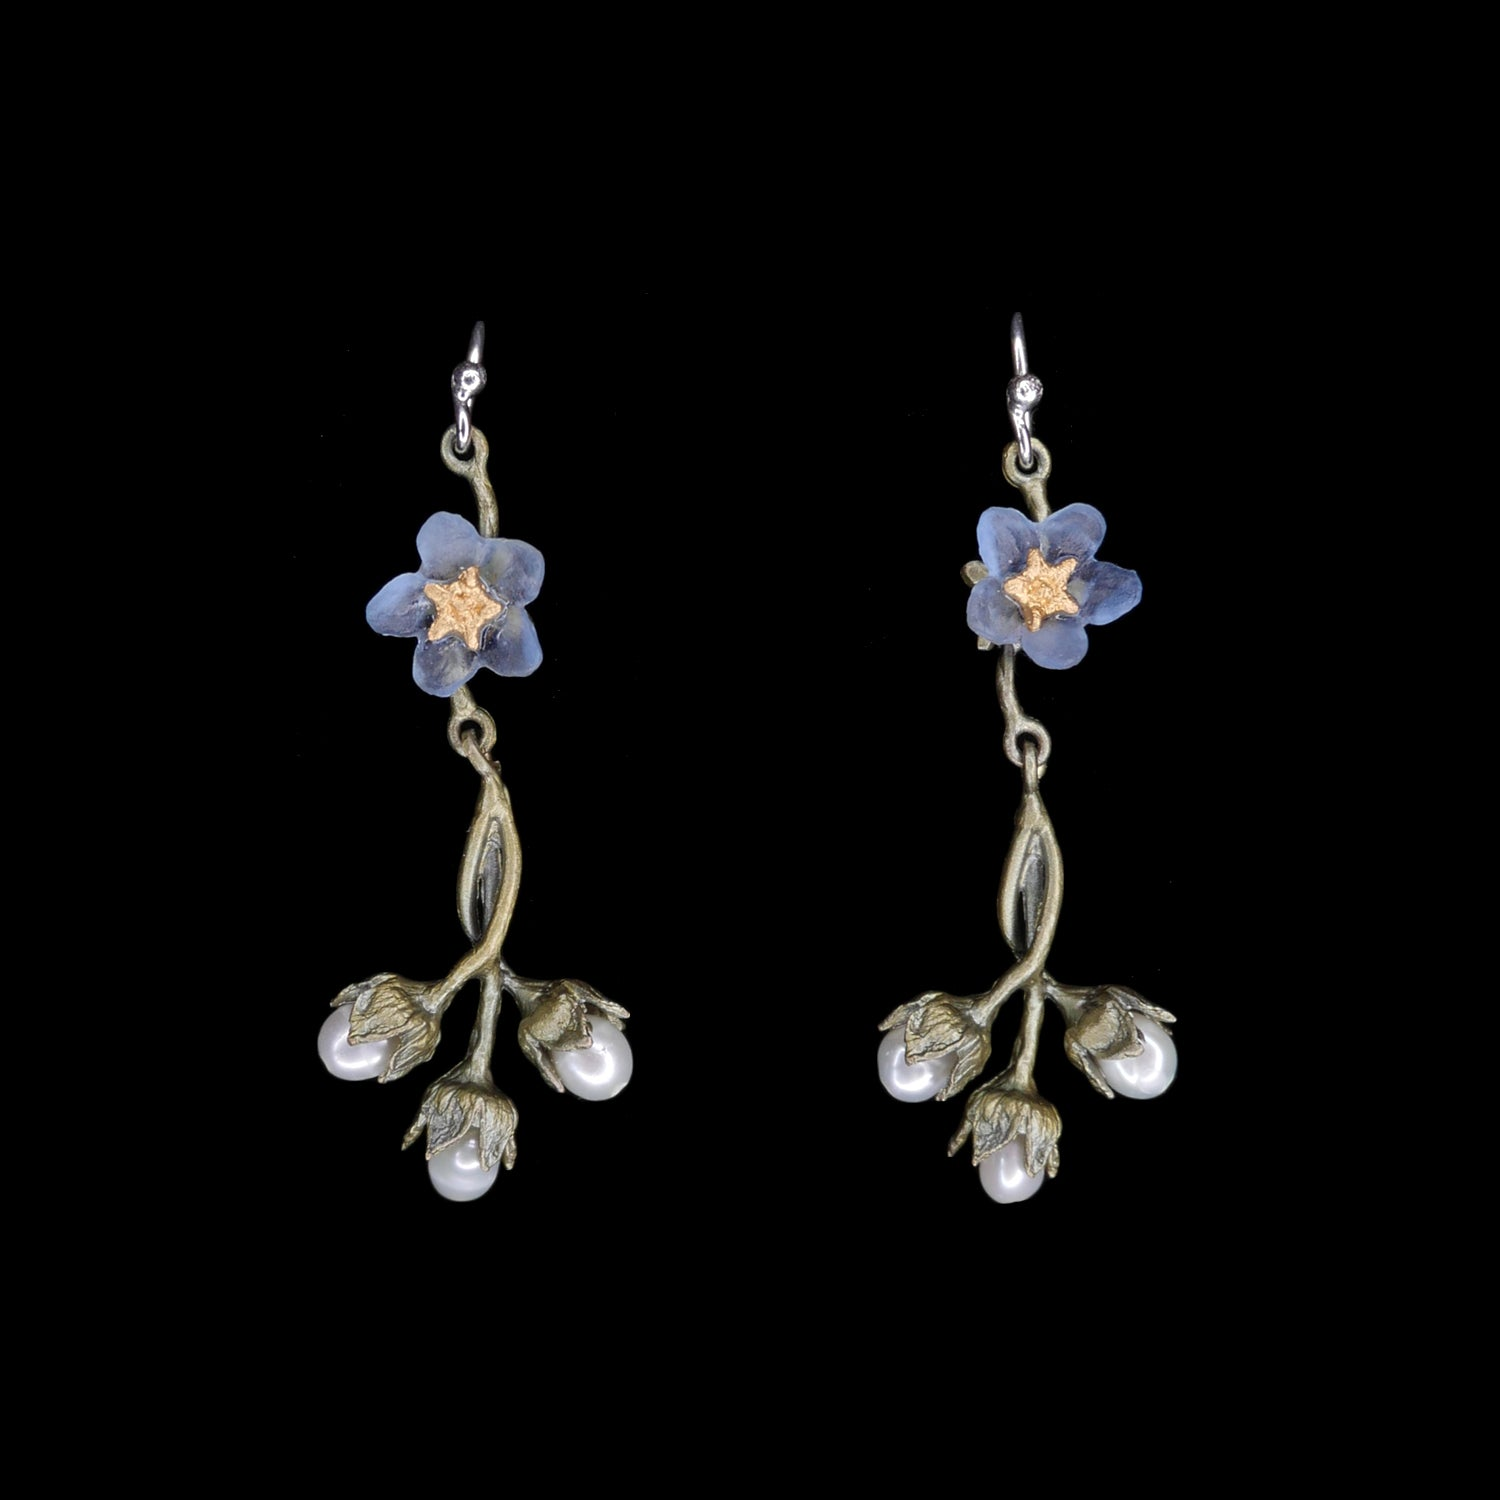 Forget Me Not Earrings - Wire